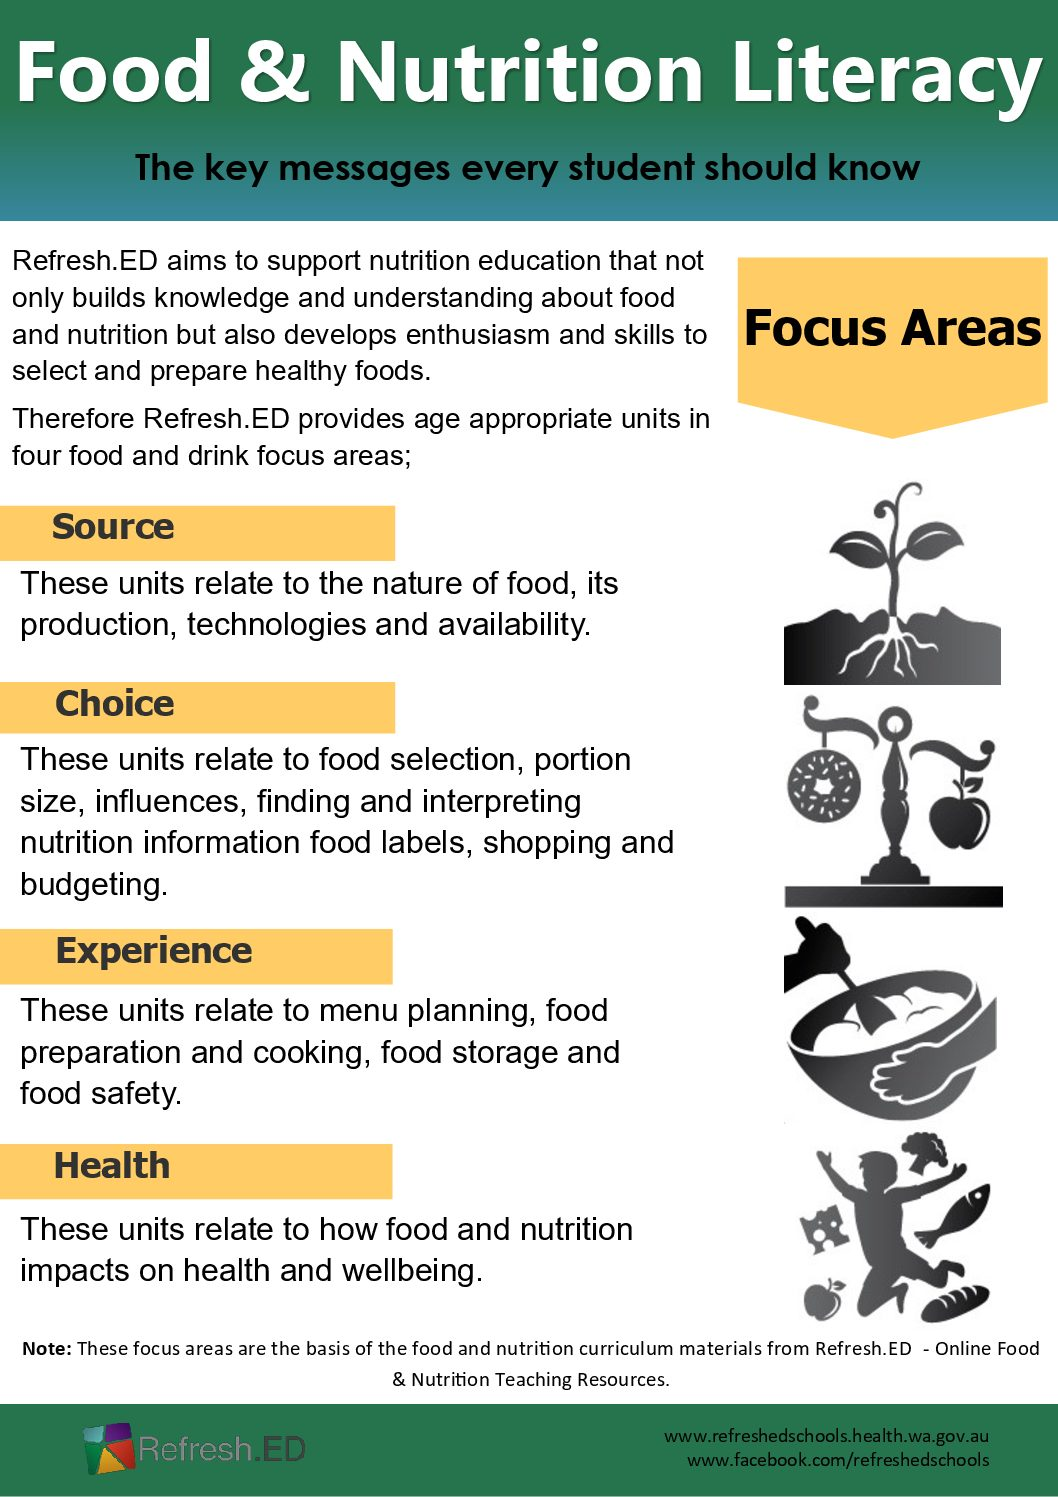 Food and Nutrition Literacy Focus Areas - Refresh ED